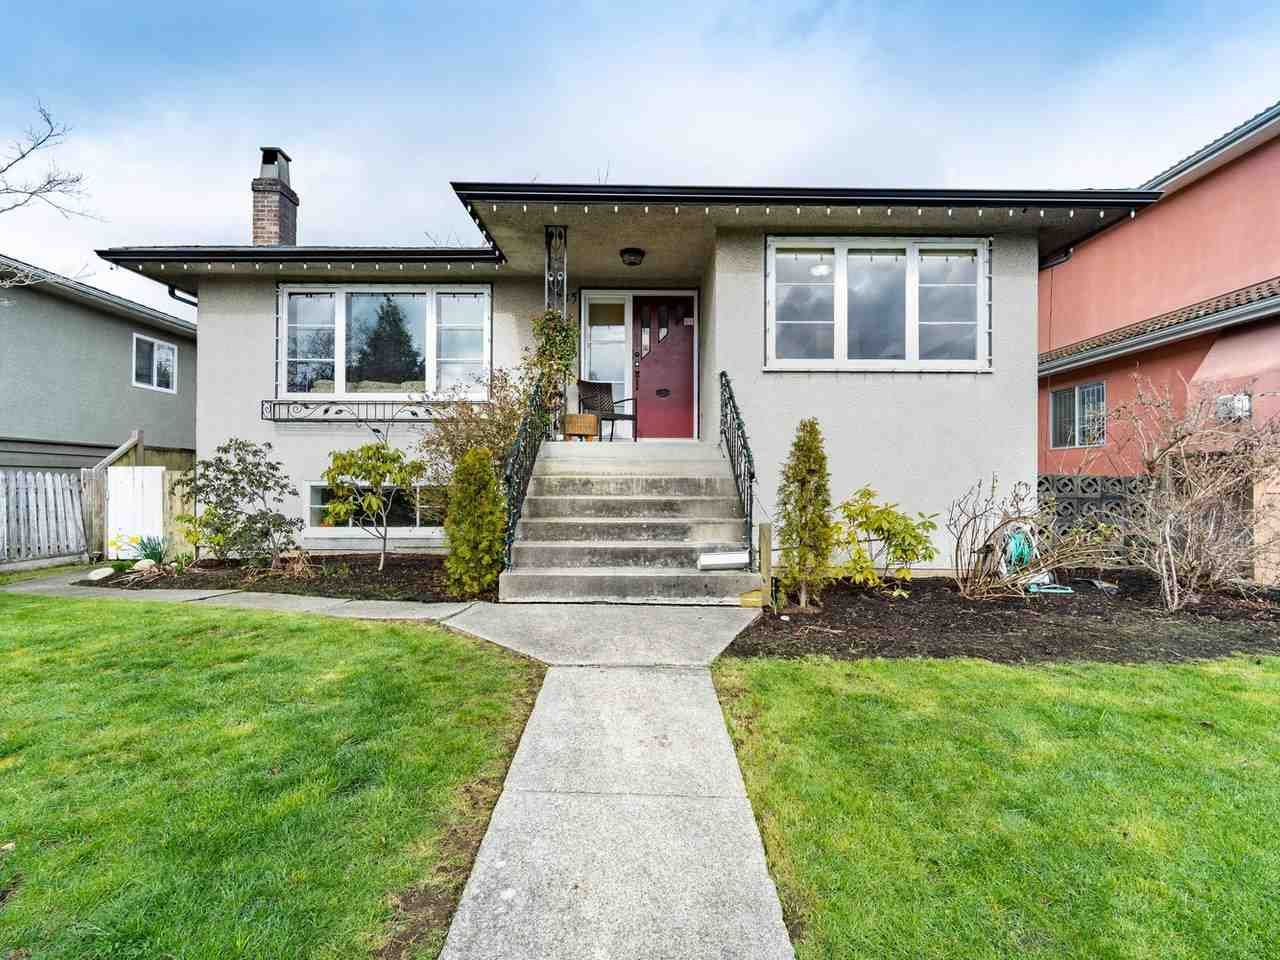 """Main Photo: 735 W 63RD Avenue in Vancouver: Marpole House for sale in """"MARPOLE"""" (Vancouver West)  : MLS®# R2547295"""